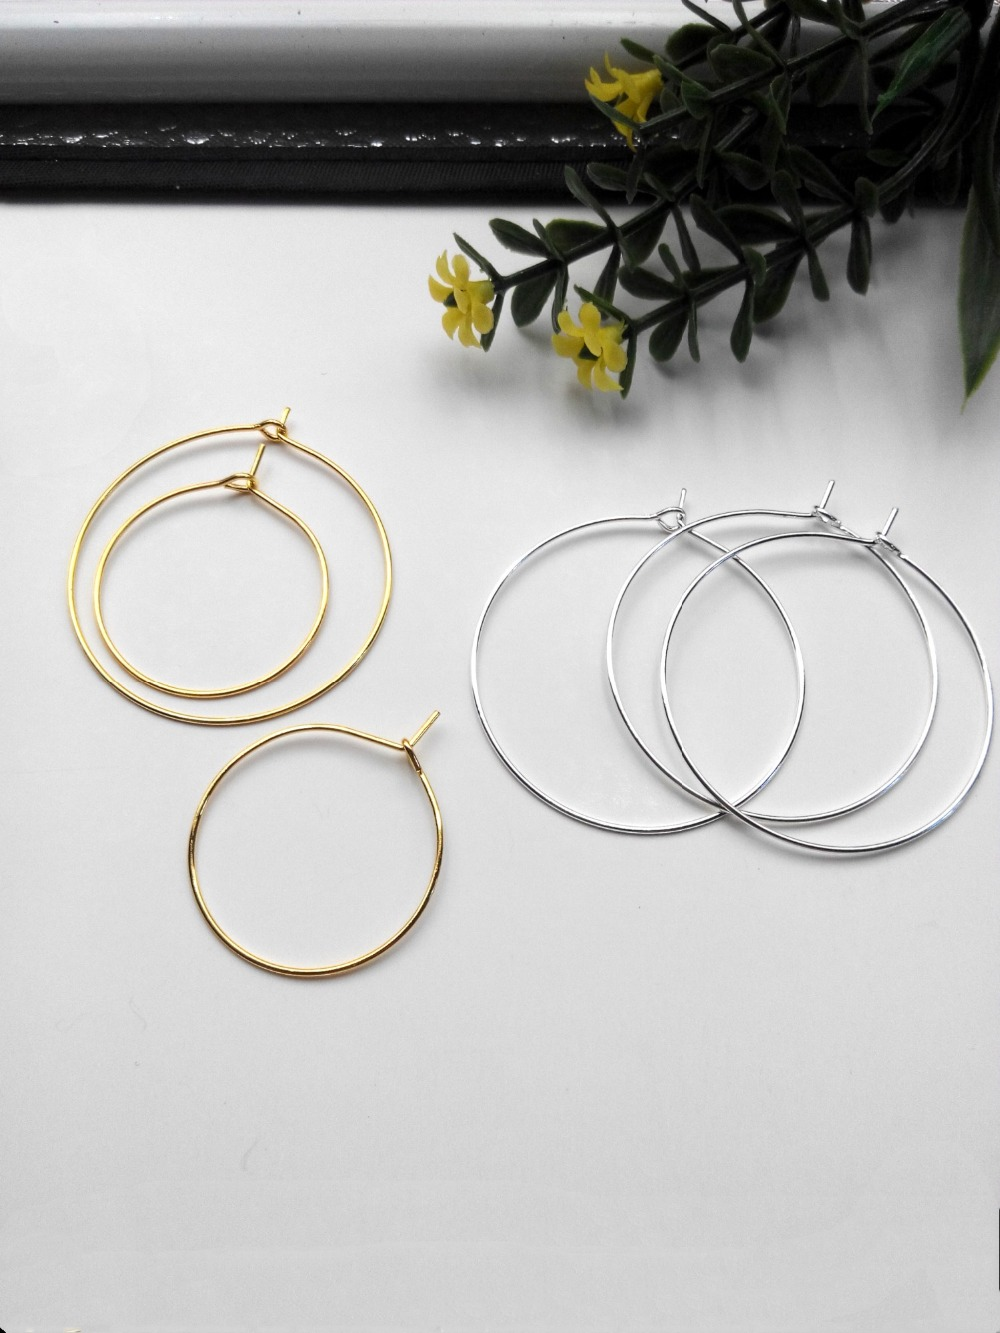 10pcs/lot Gold/Silver Color Ear Wire Hook 25/35/40mm Diameter Earring Hoops Findings For Diy Fashion Jewelry Making Accessories